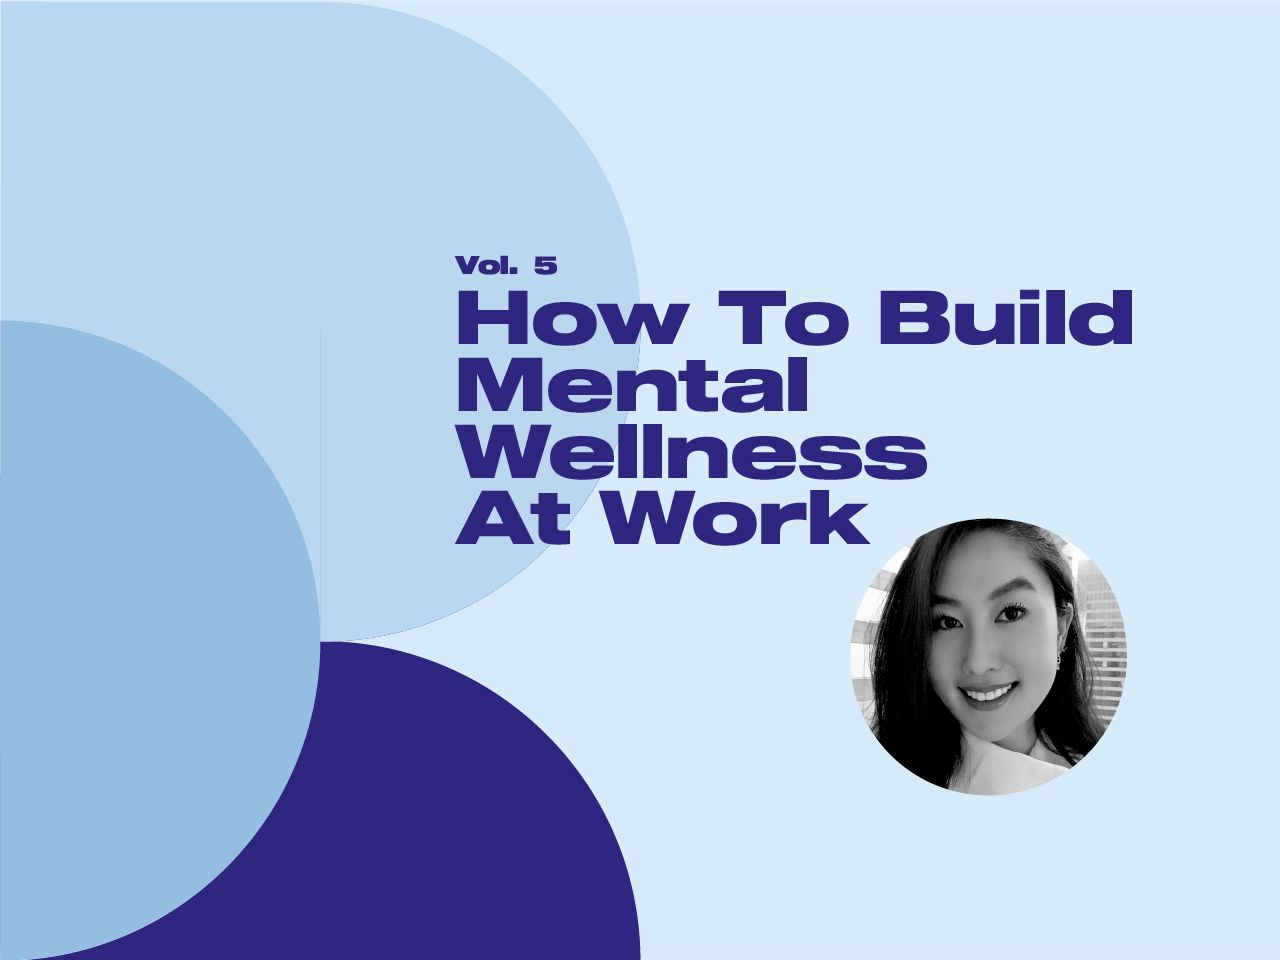 Cloud Talk: How To Build Mental Wellness At Work